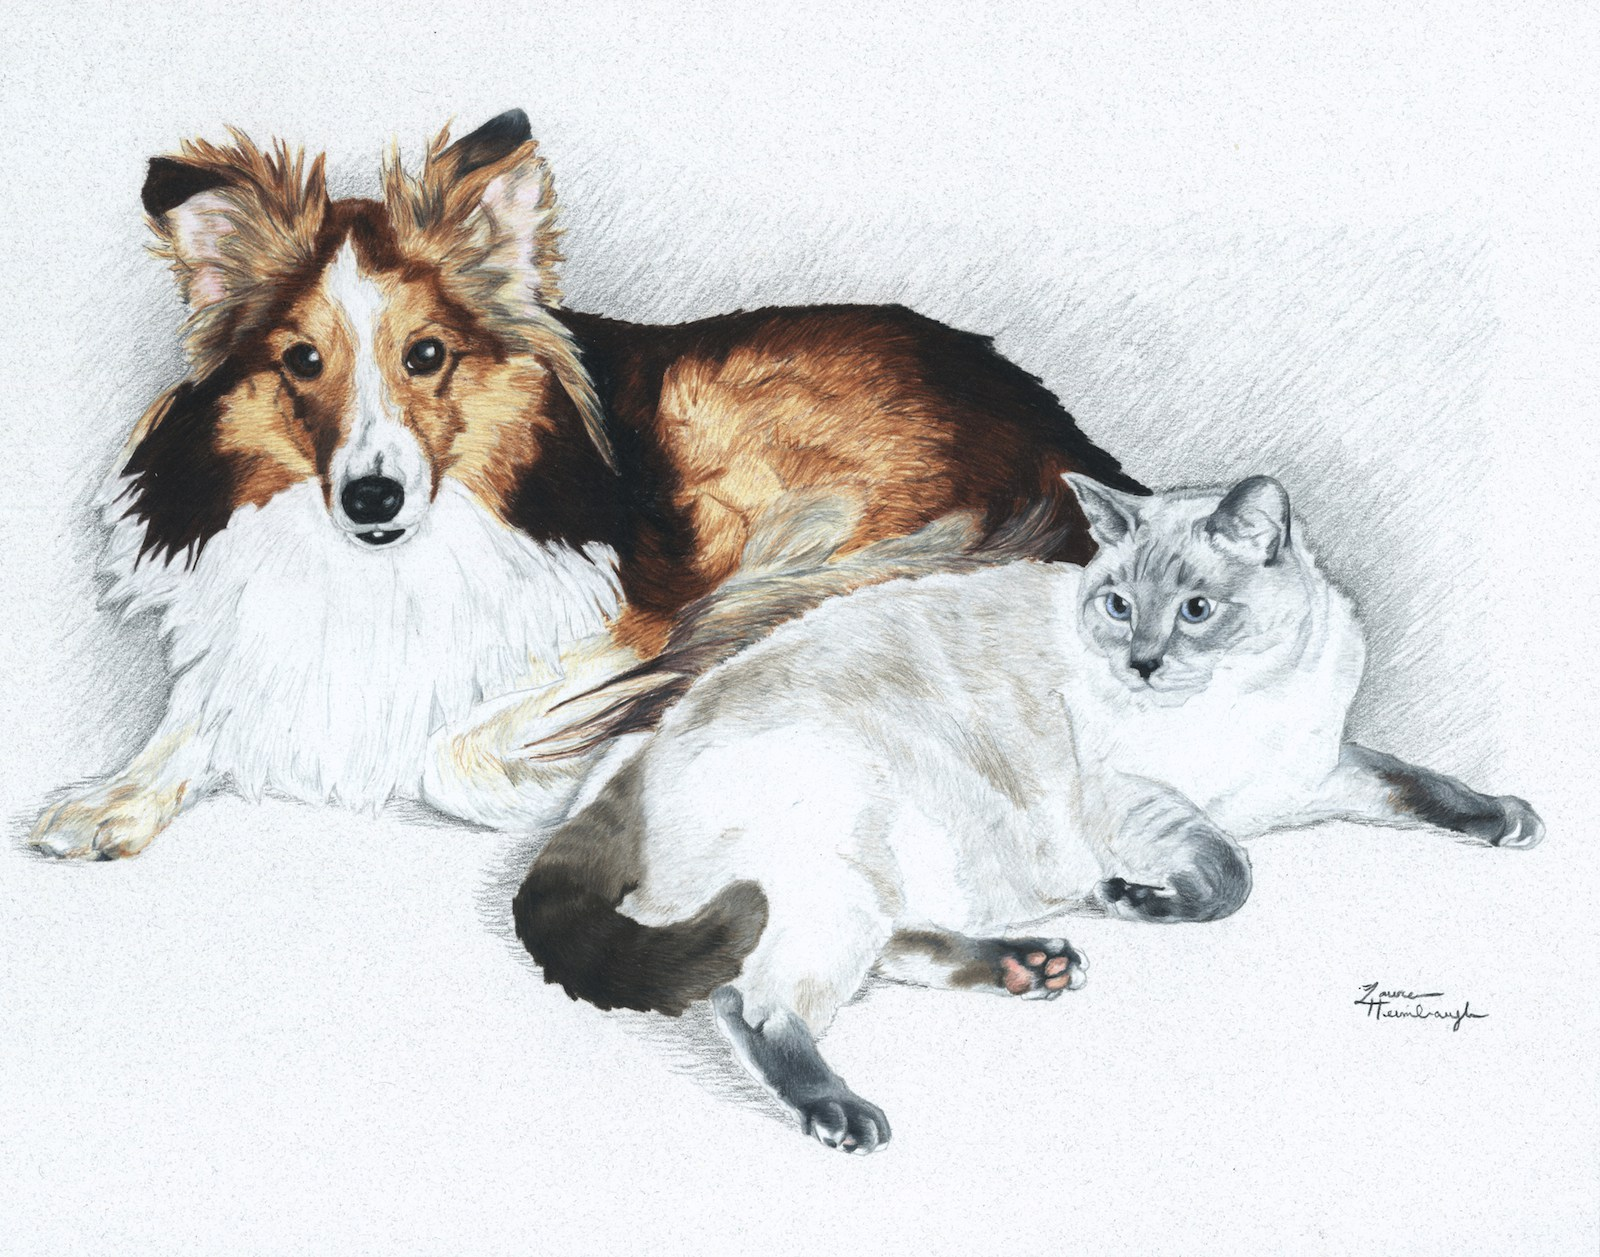 Shawnee the Sheltie and Winter the Cat (2013)